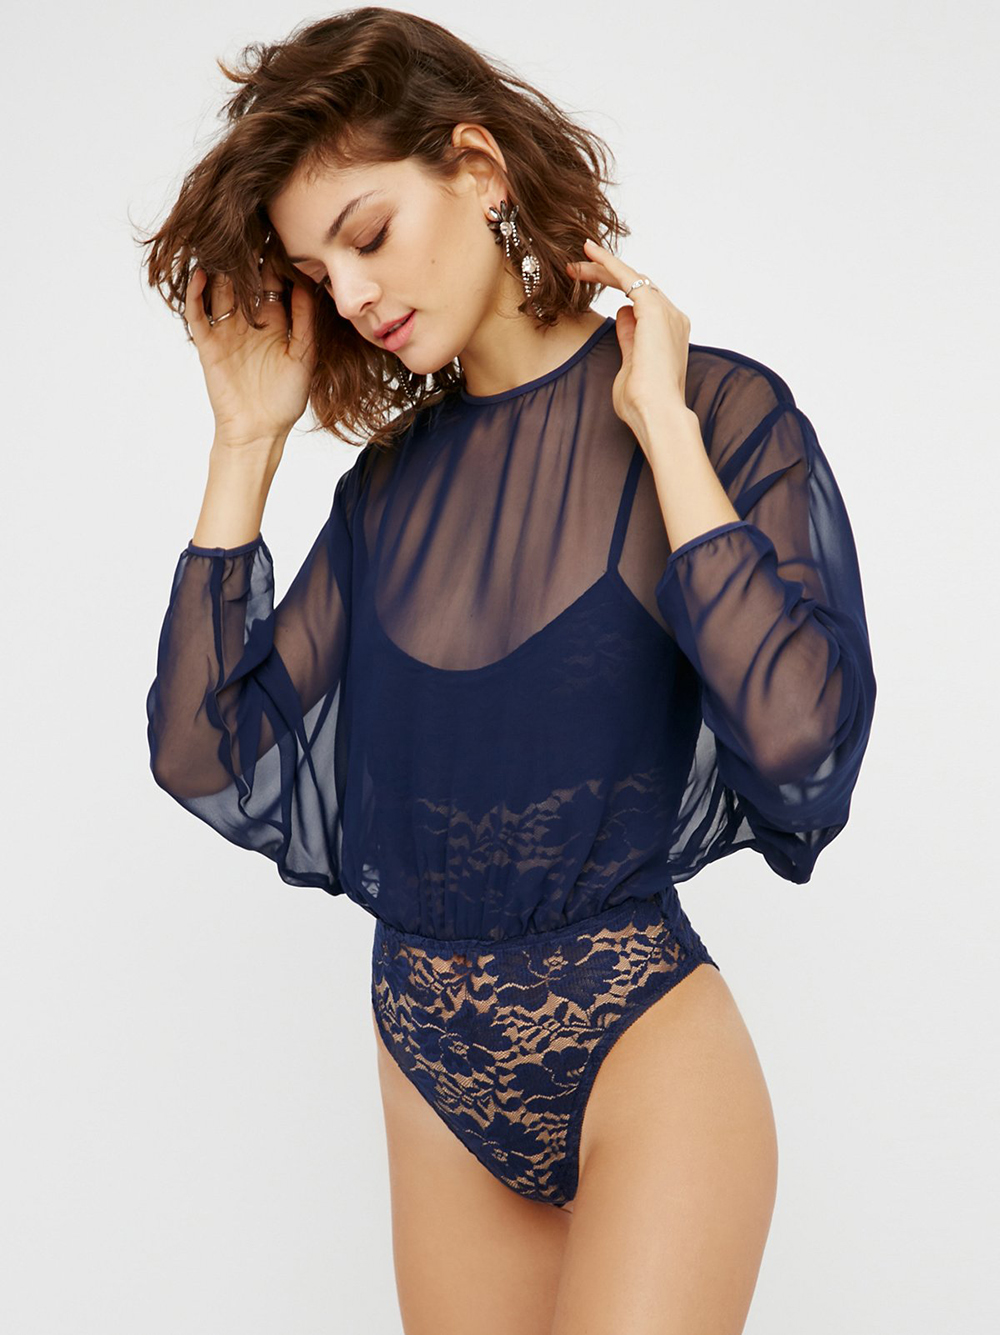 Free People Mama Jen Bodysuit - The Best Bodysuits